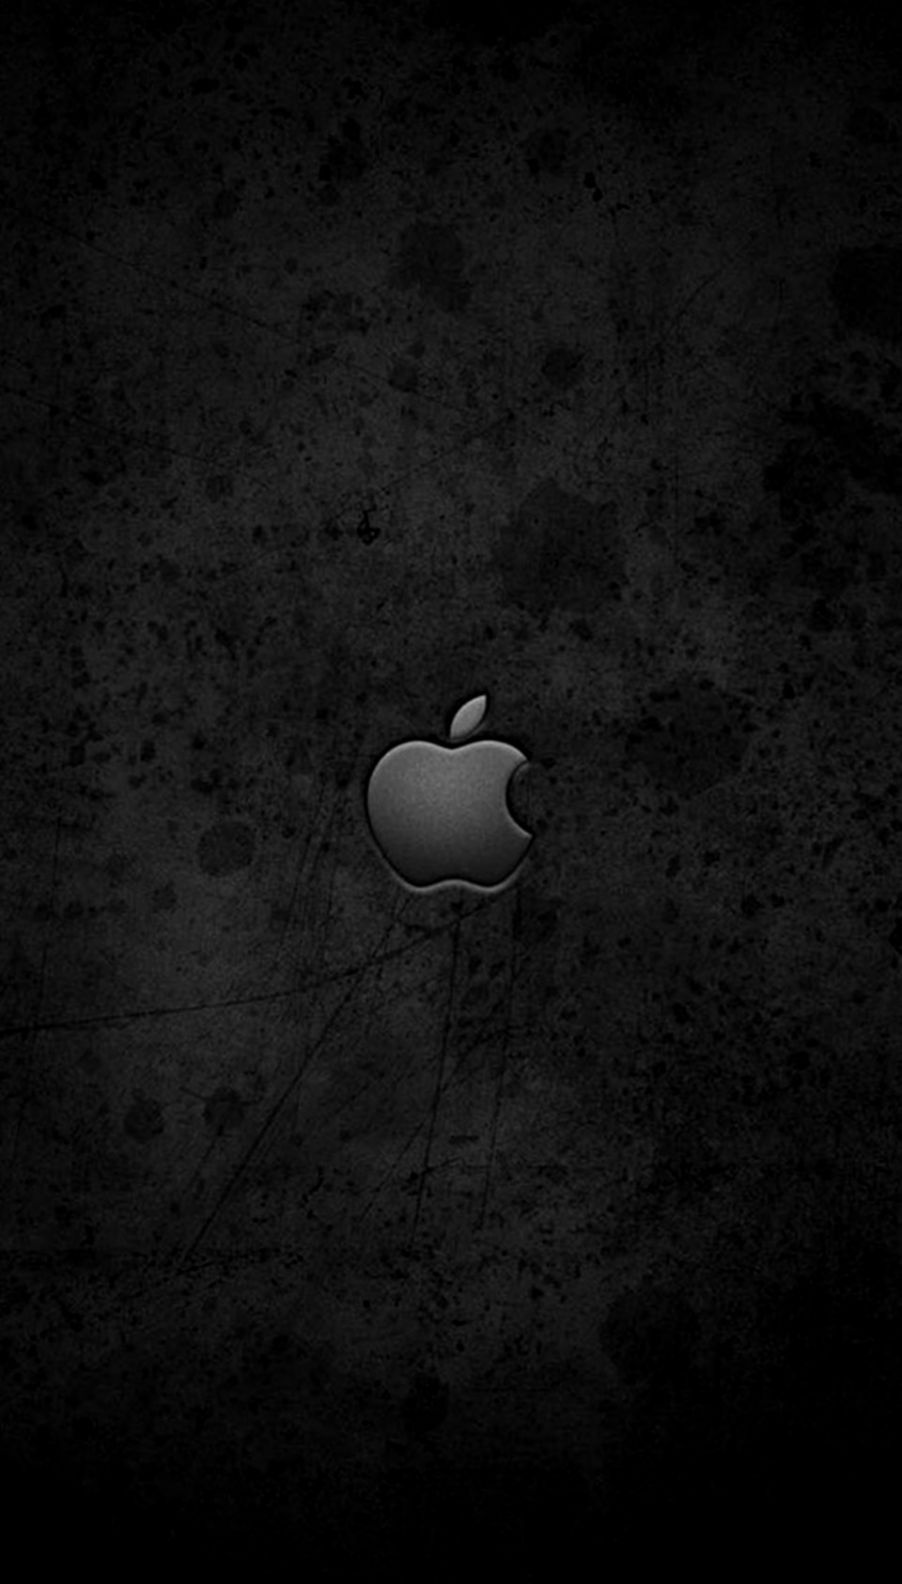 Iphone Wallpaper 4k Apple Logo Ideas In 2020 Apple Wallpaper Iphone Apple Logo Wallpaper Apple Logo Wallpaper Iphone